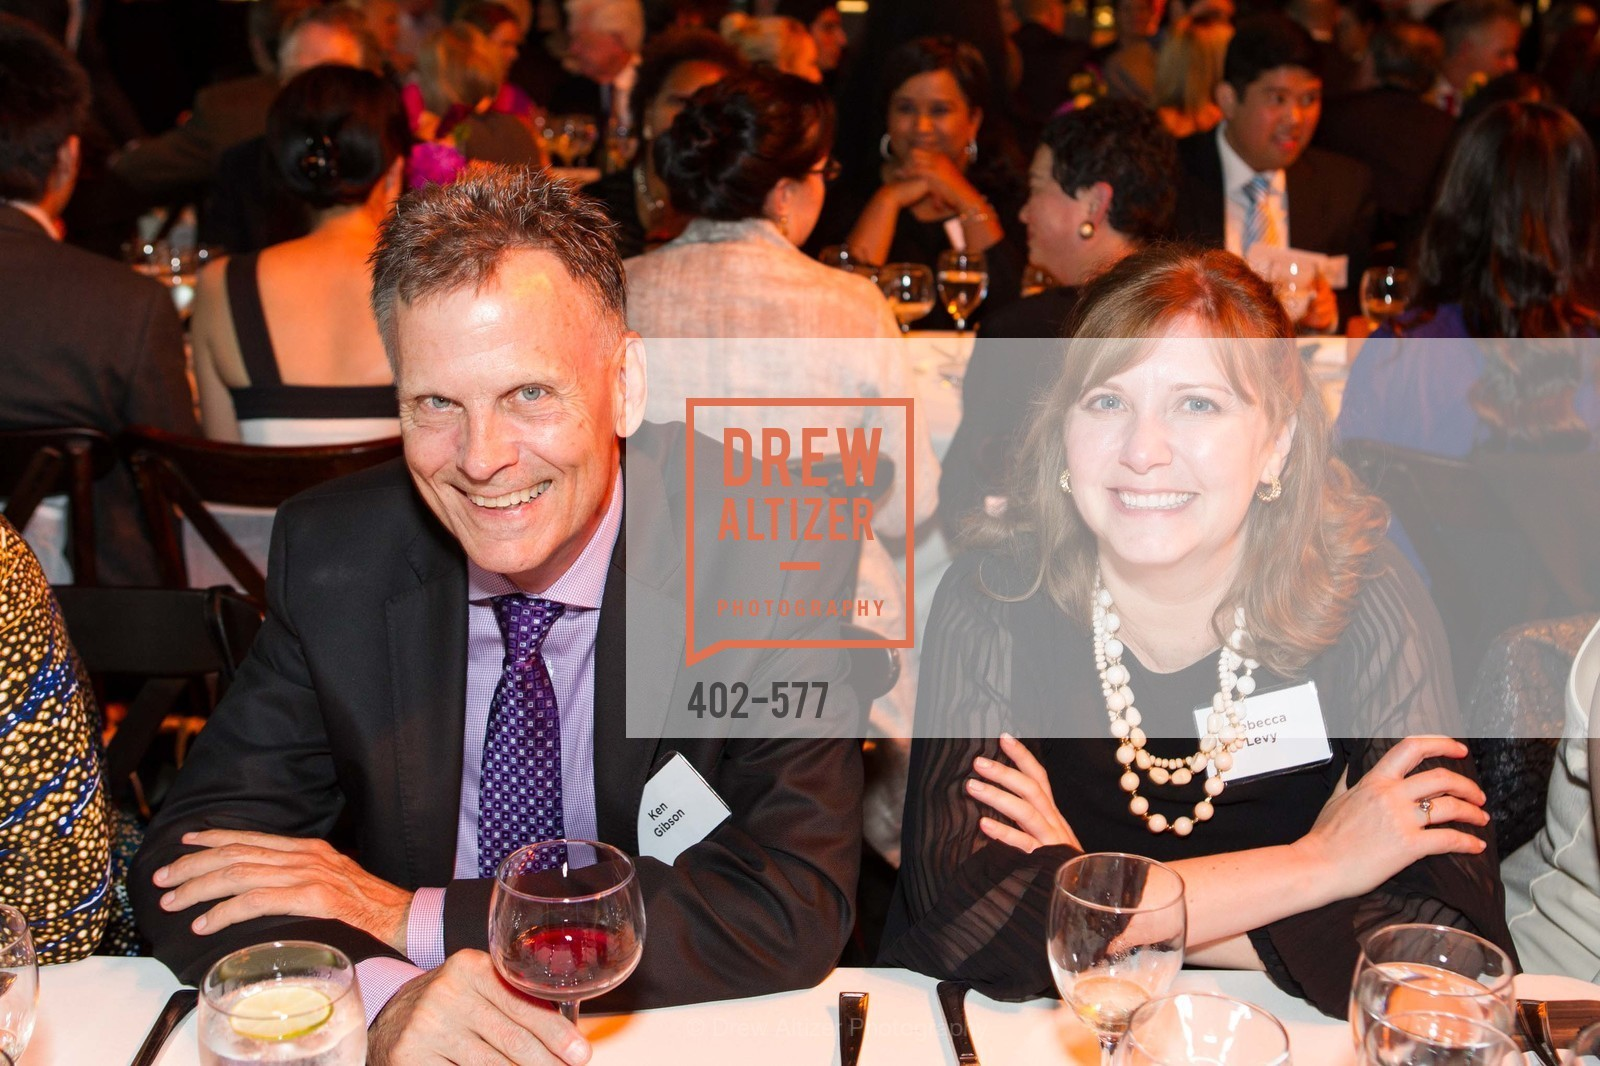 Ken Gibson, Rebecca Levy, SF-MARIN FOOD BANK One Big Table Gala, US, September 27th, 2014,Drew Altizer, Drew Altizer Photography, full-service event agency, private events, San Francisco photographer, photographer California